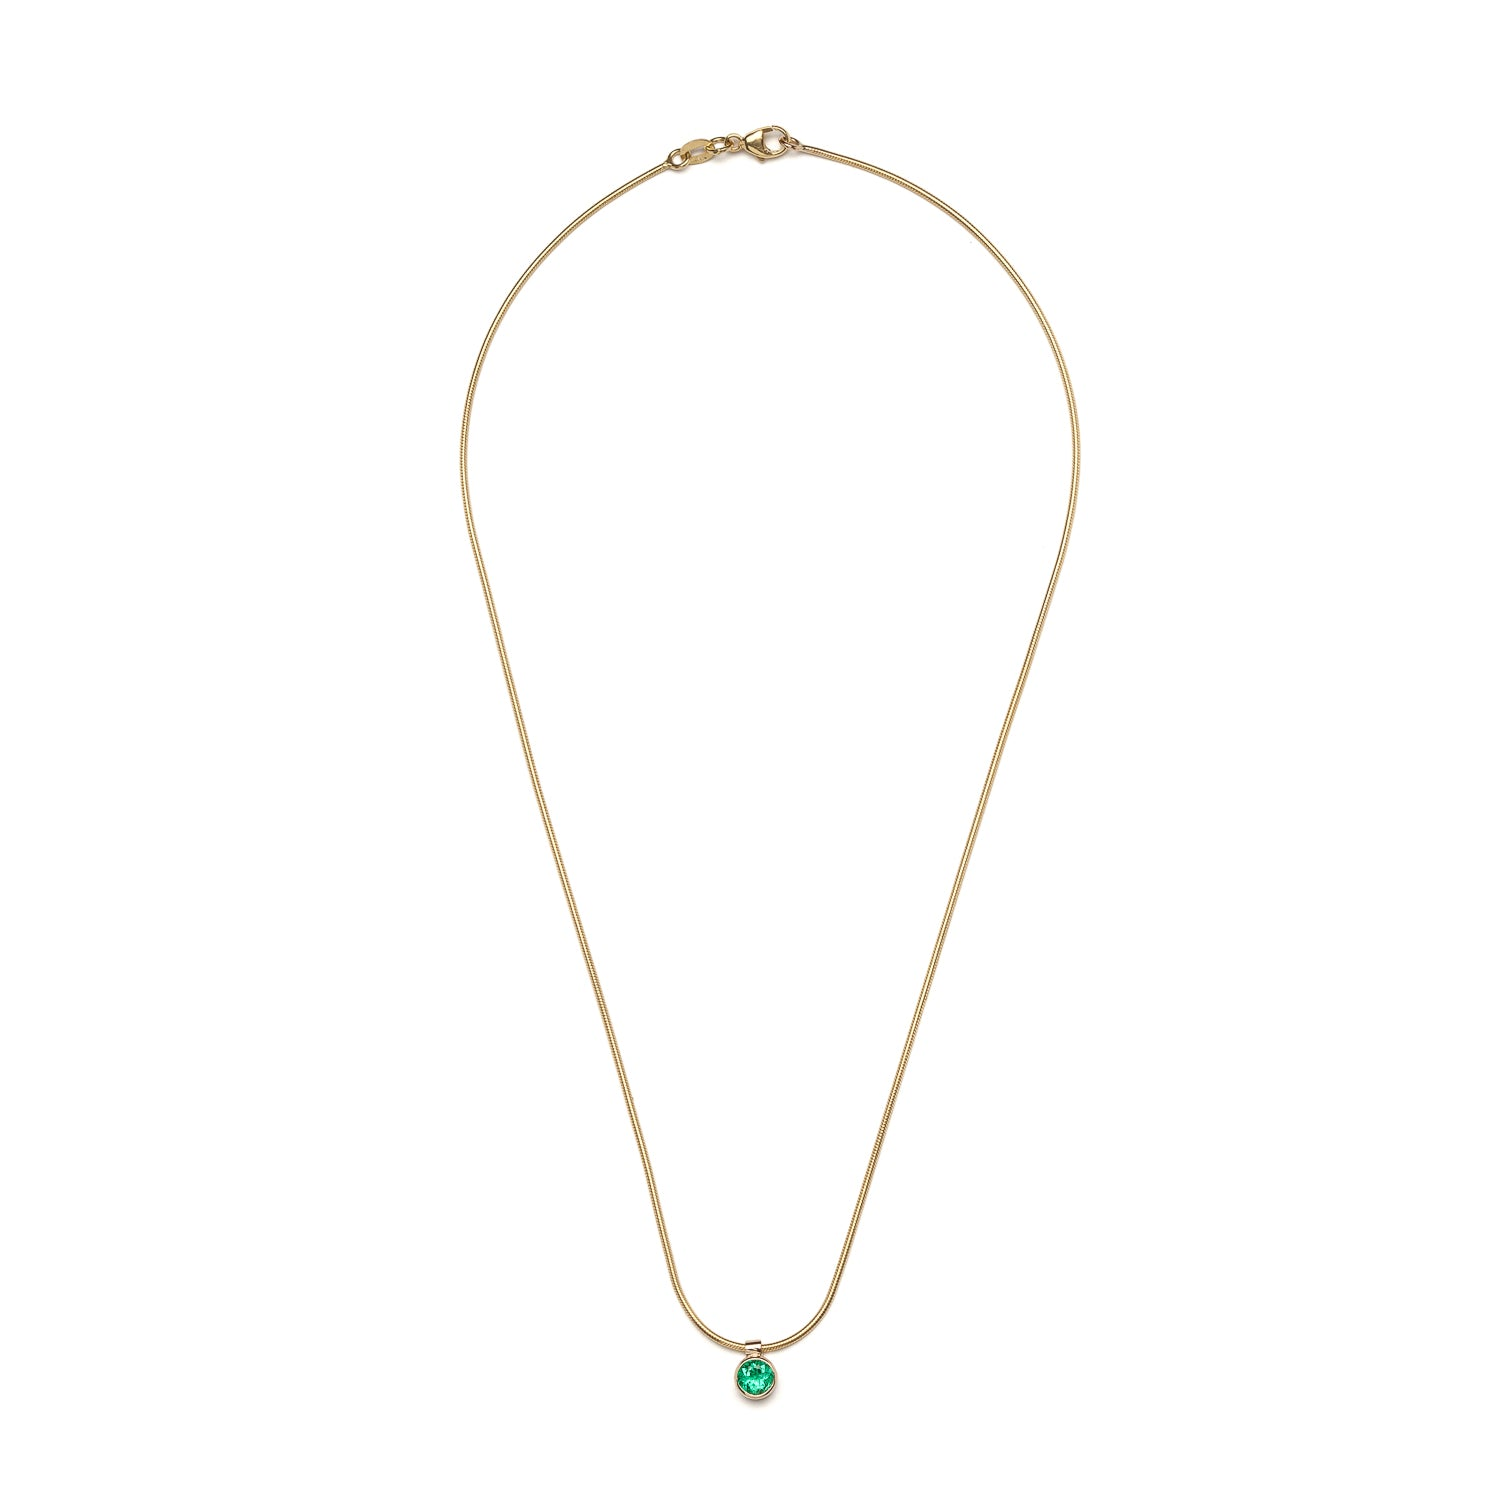 Clea Necklace - Emerald